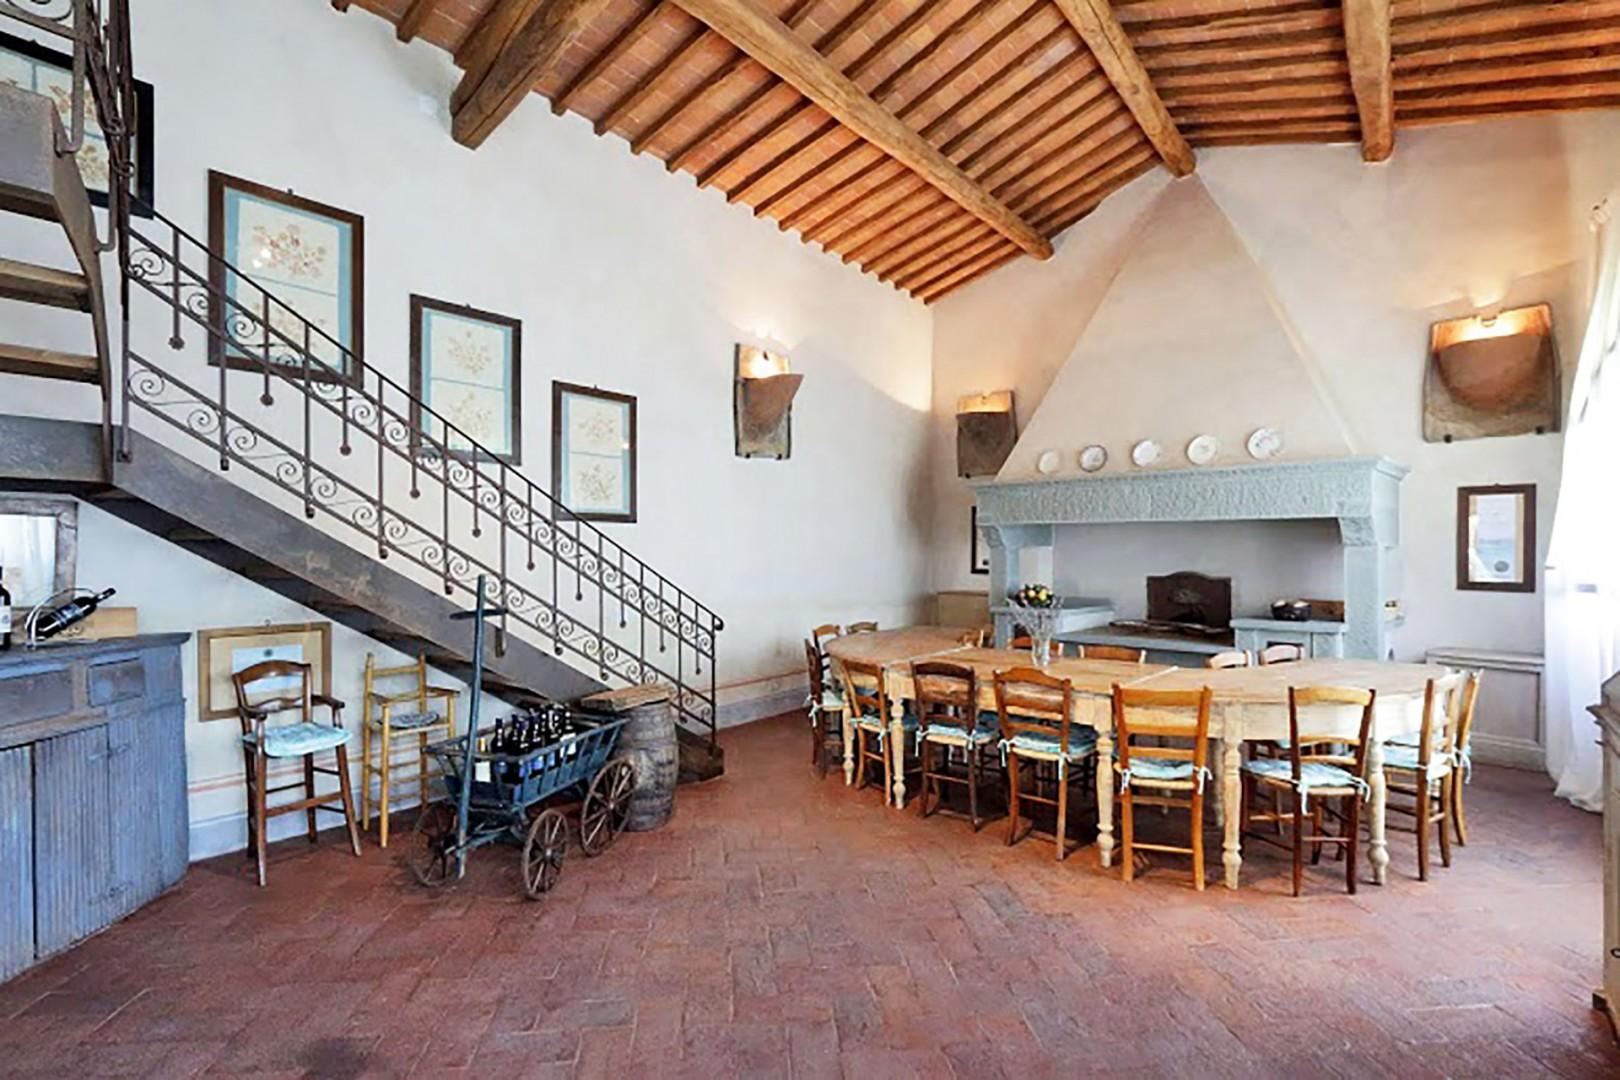 Common room where breakfast is served and wine tastings are held.